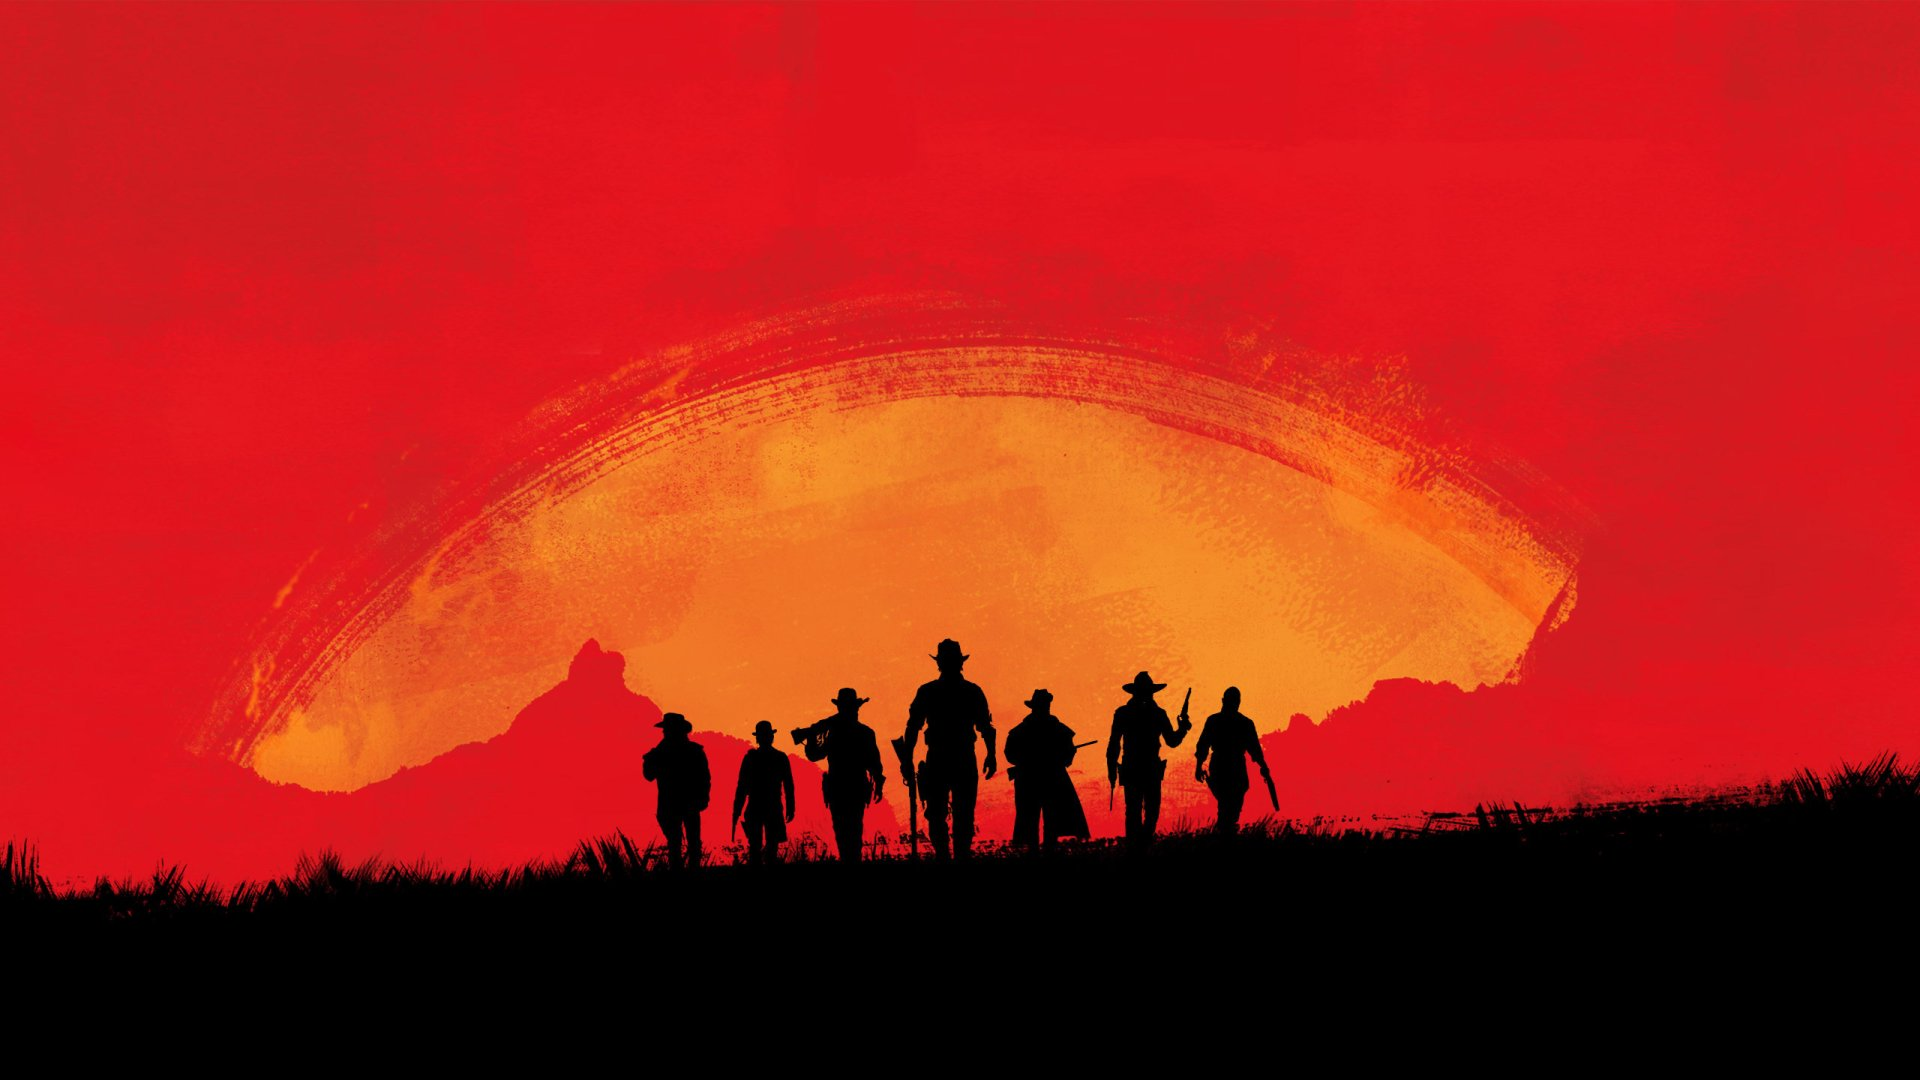 Red Dead Redemption New Tab